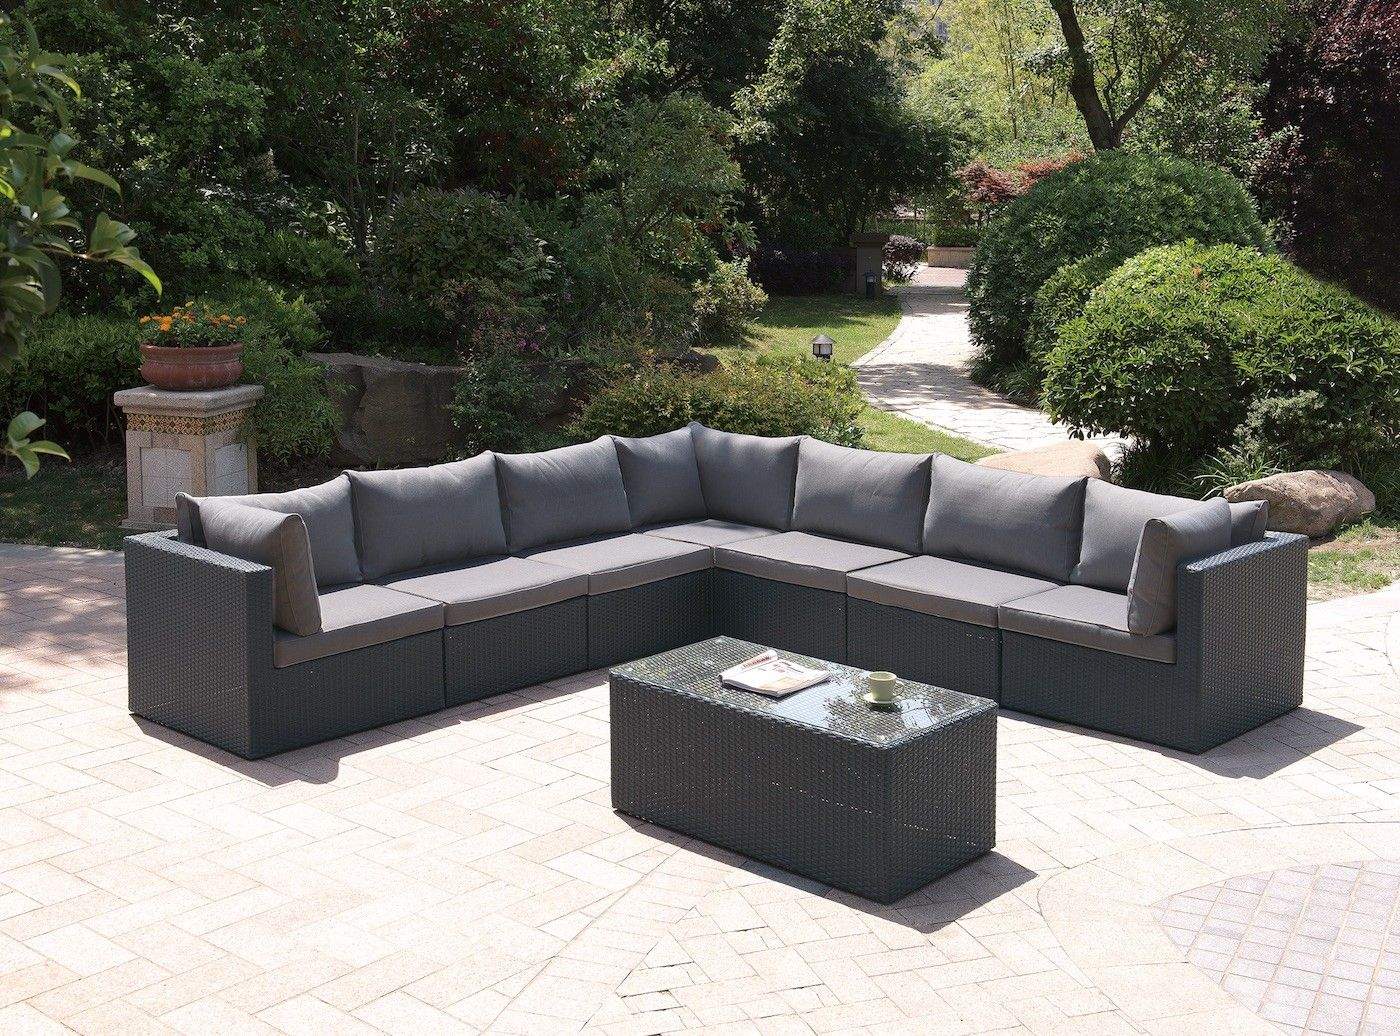 Best 8 Piece Sectional Seating Group With Cushions Outdoor 640 x 480